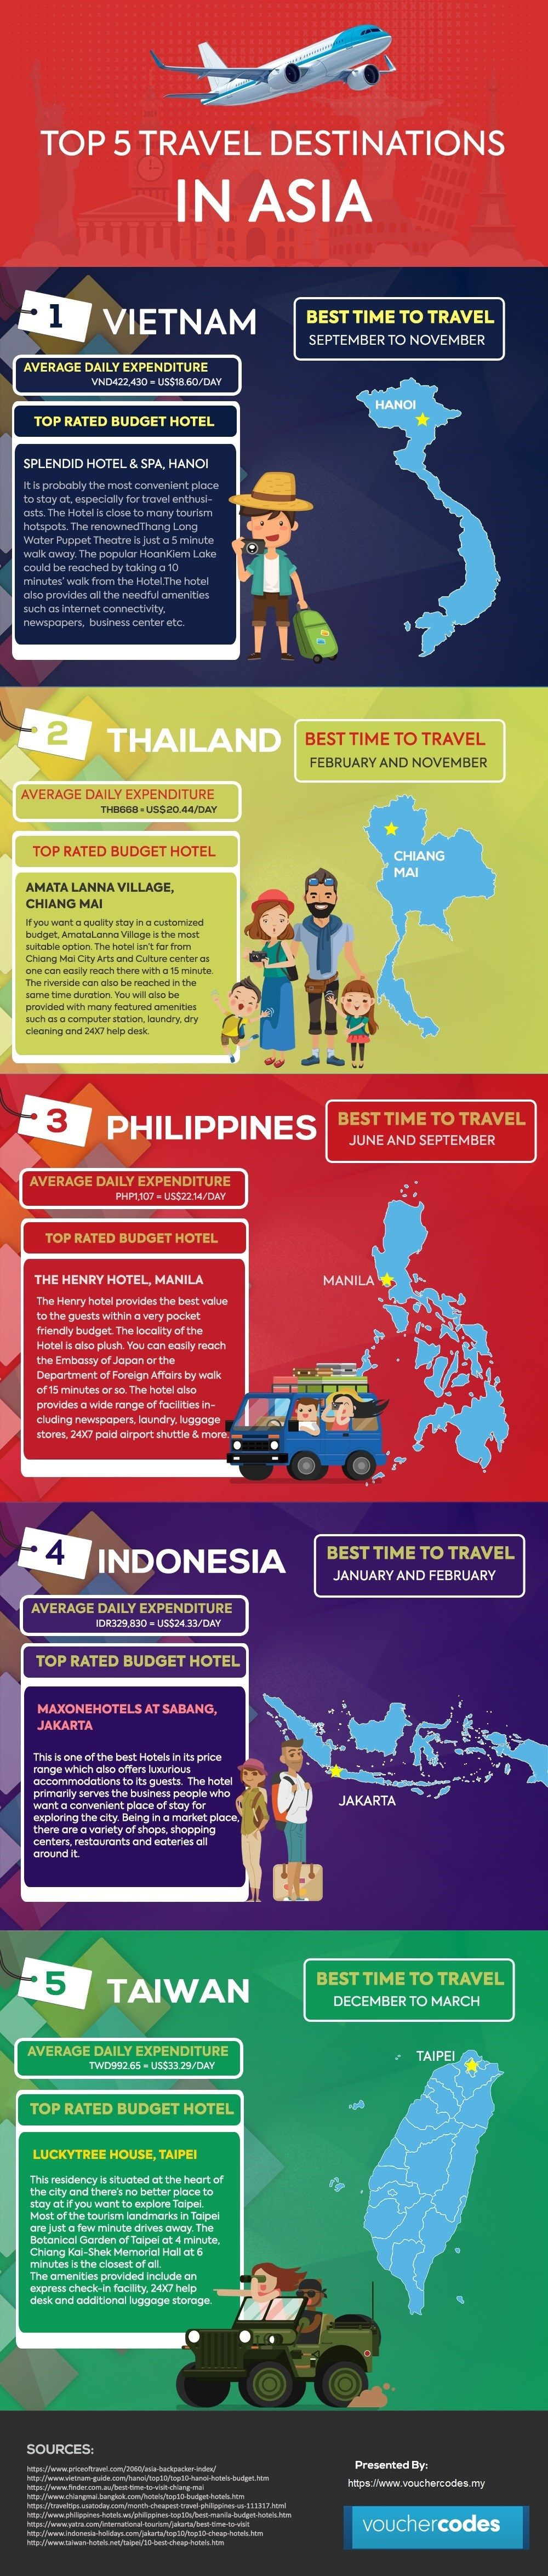 Best Travel destinations in Asia on Budget Budget